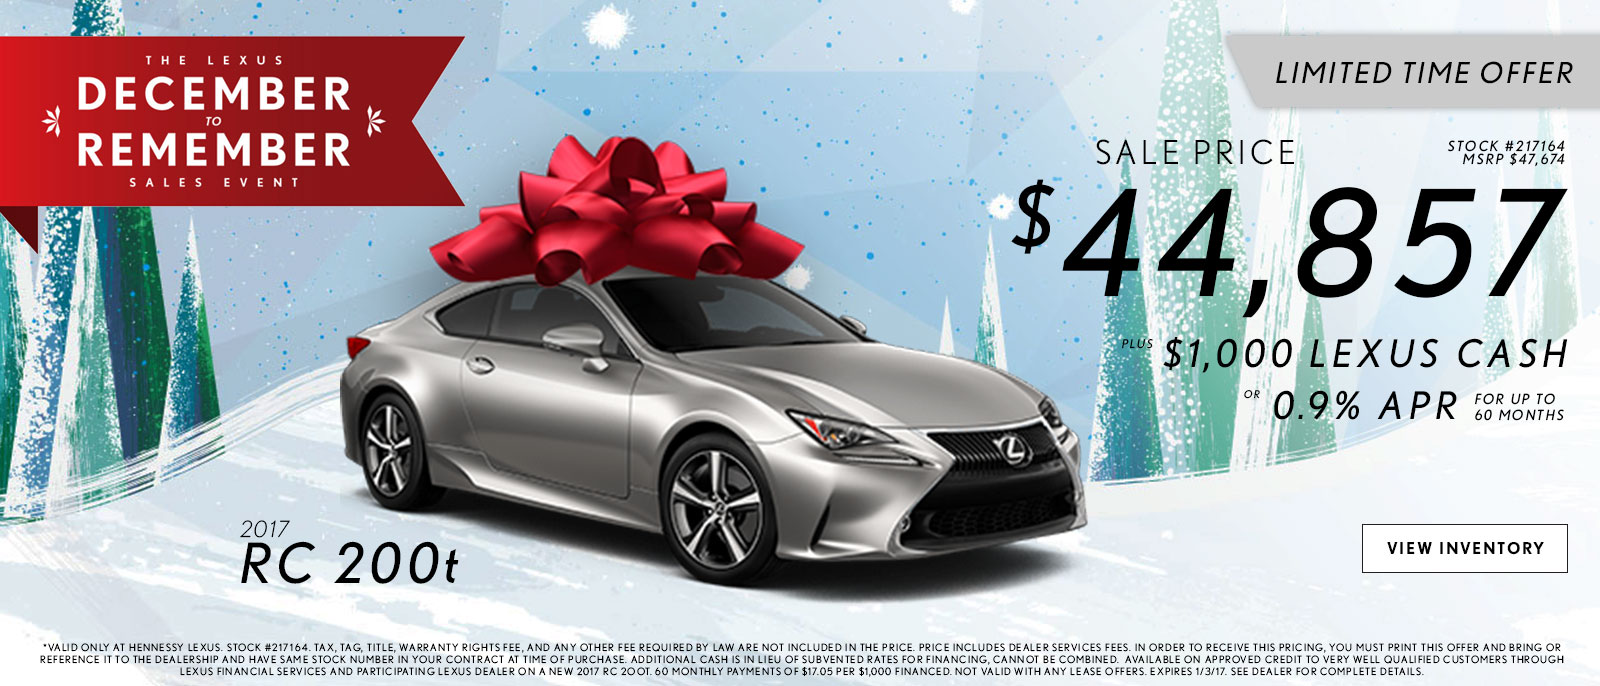 Lexus December to Remember RC Offers